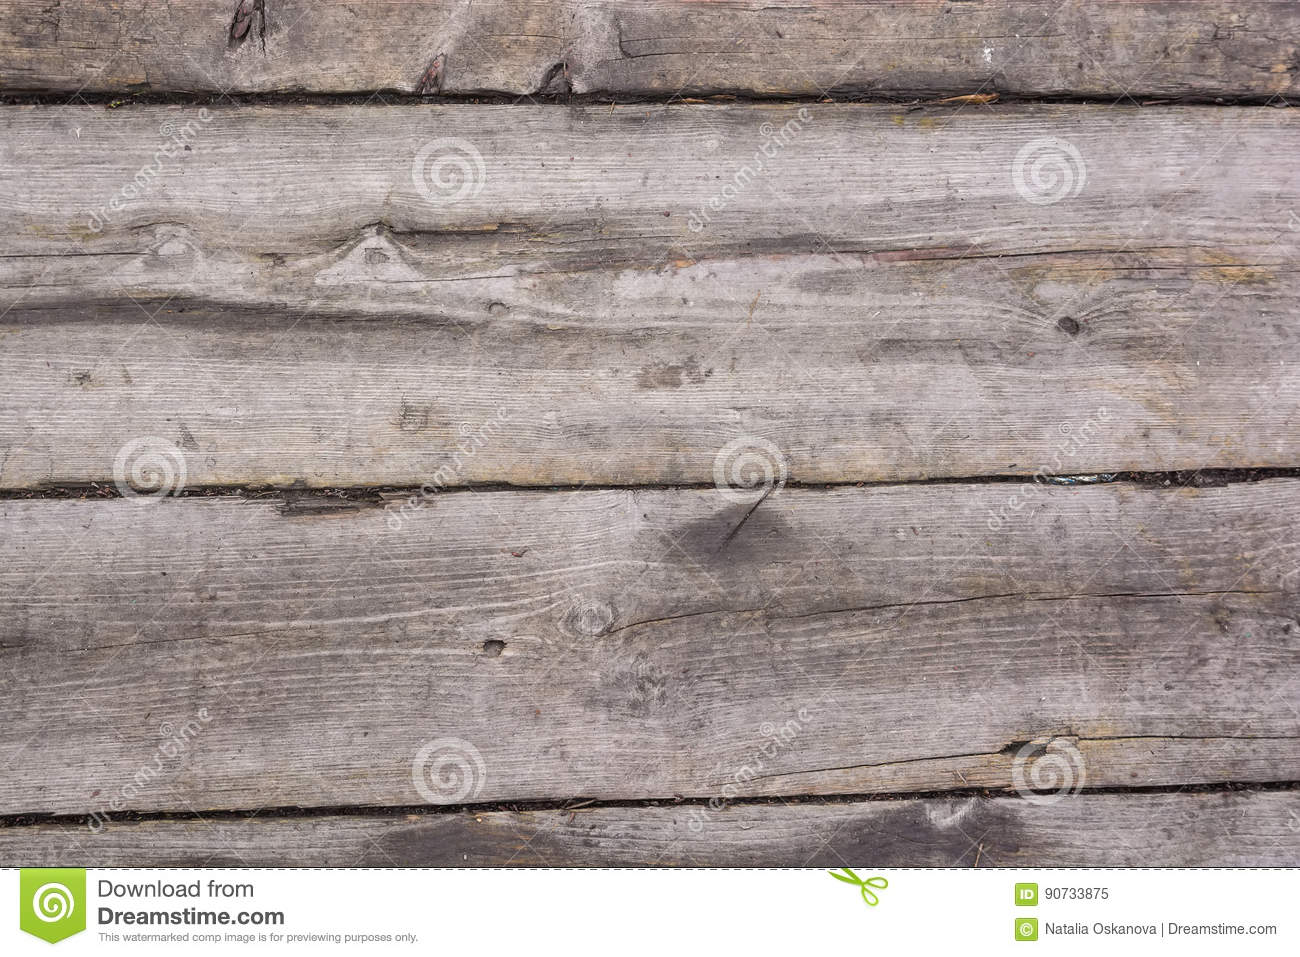 Download High Resolution Old Wooden Planks Texture Stock Image